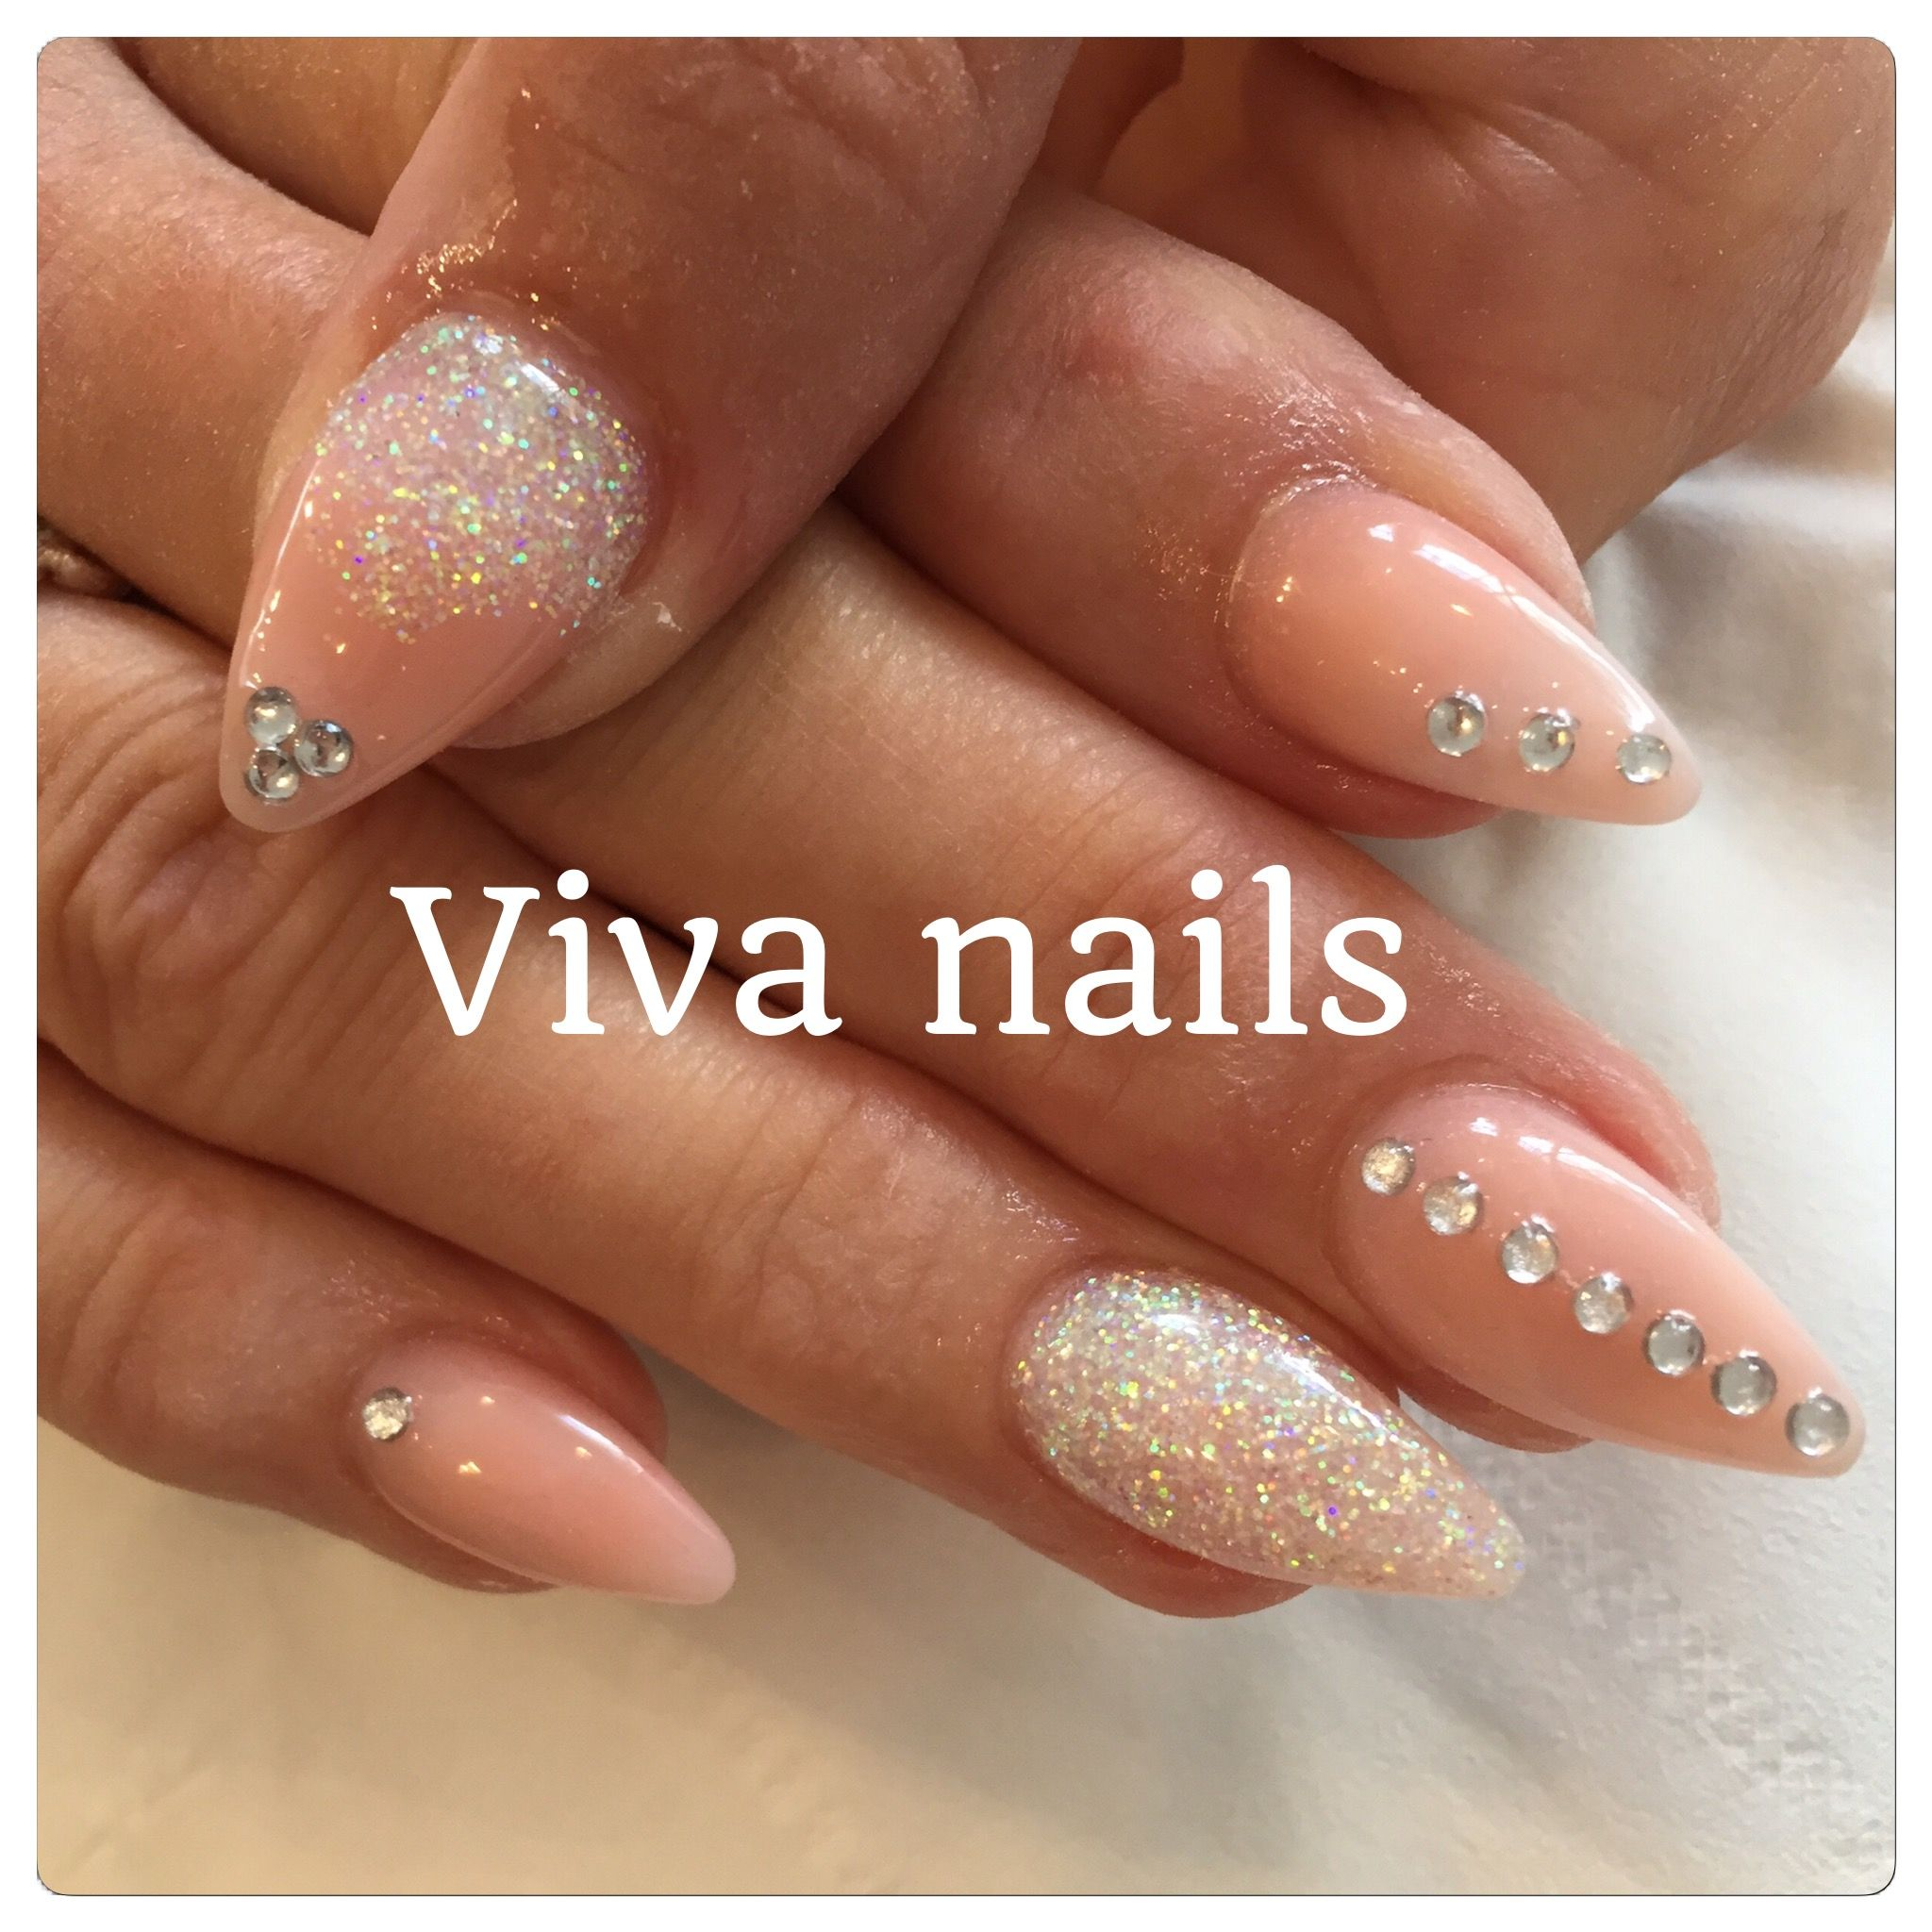 almond #acrylic #nails #nude #iridescent #glitter #nailart #diamonds ...